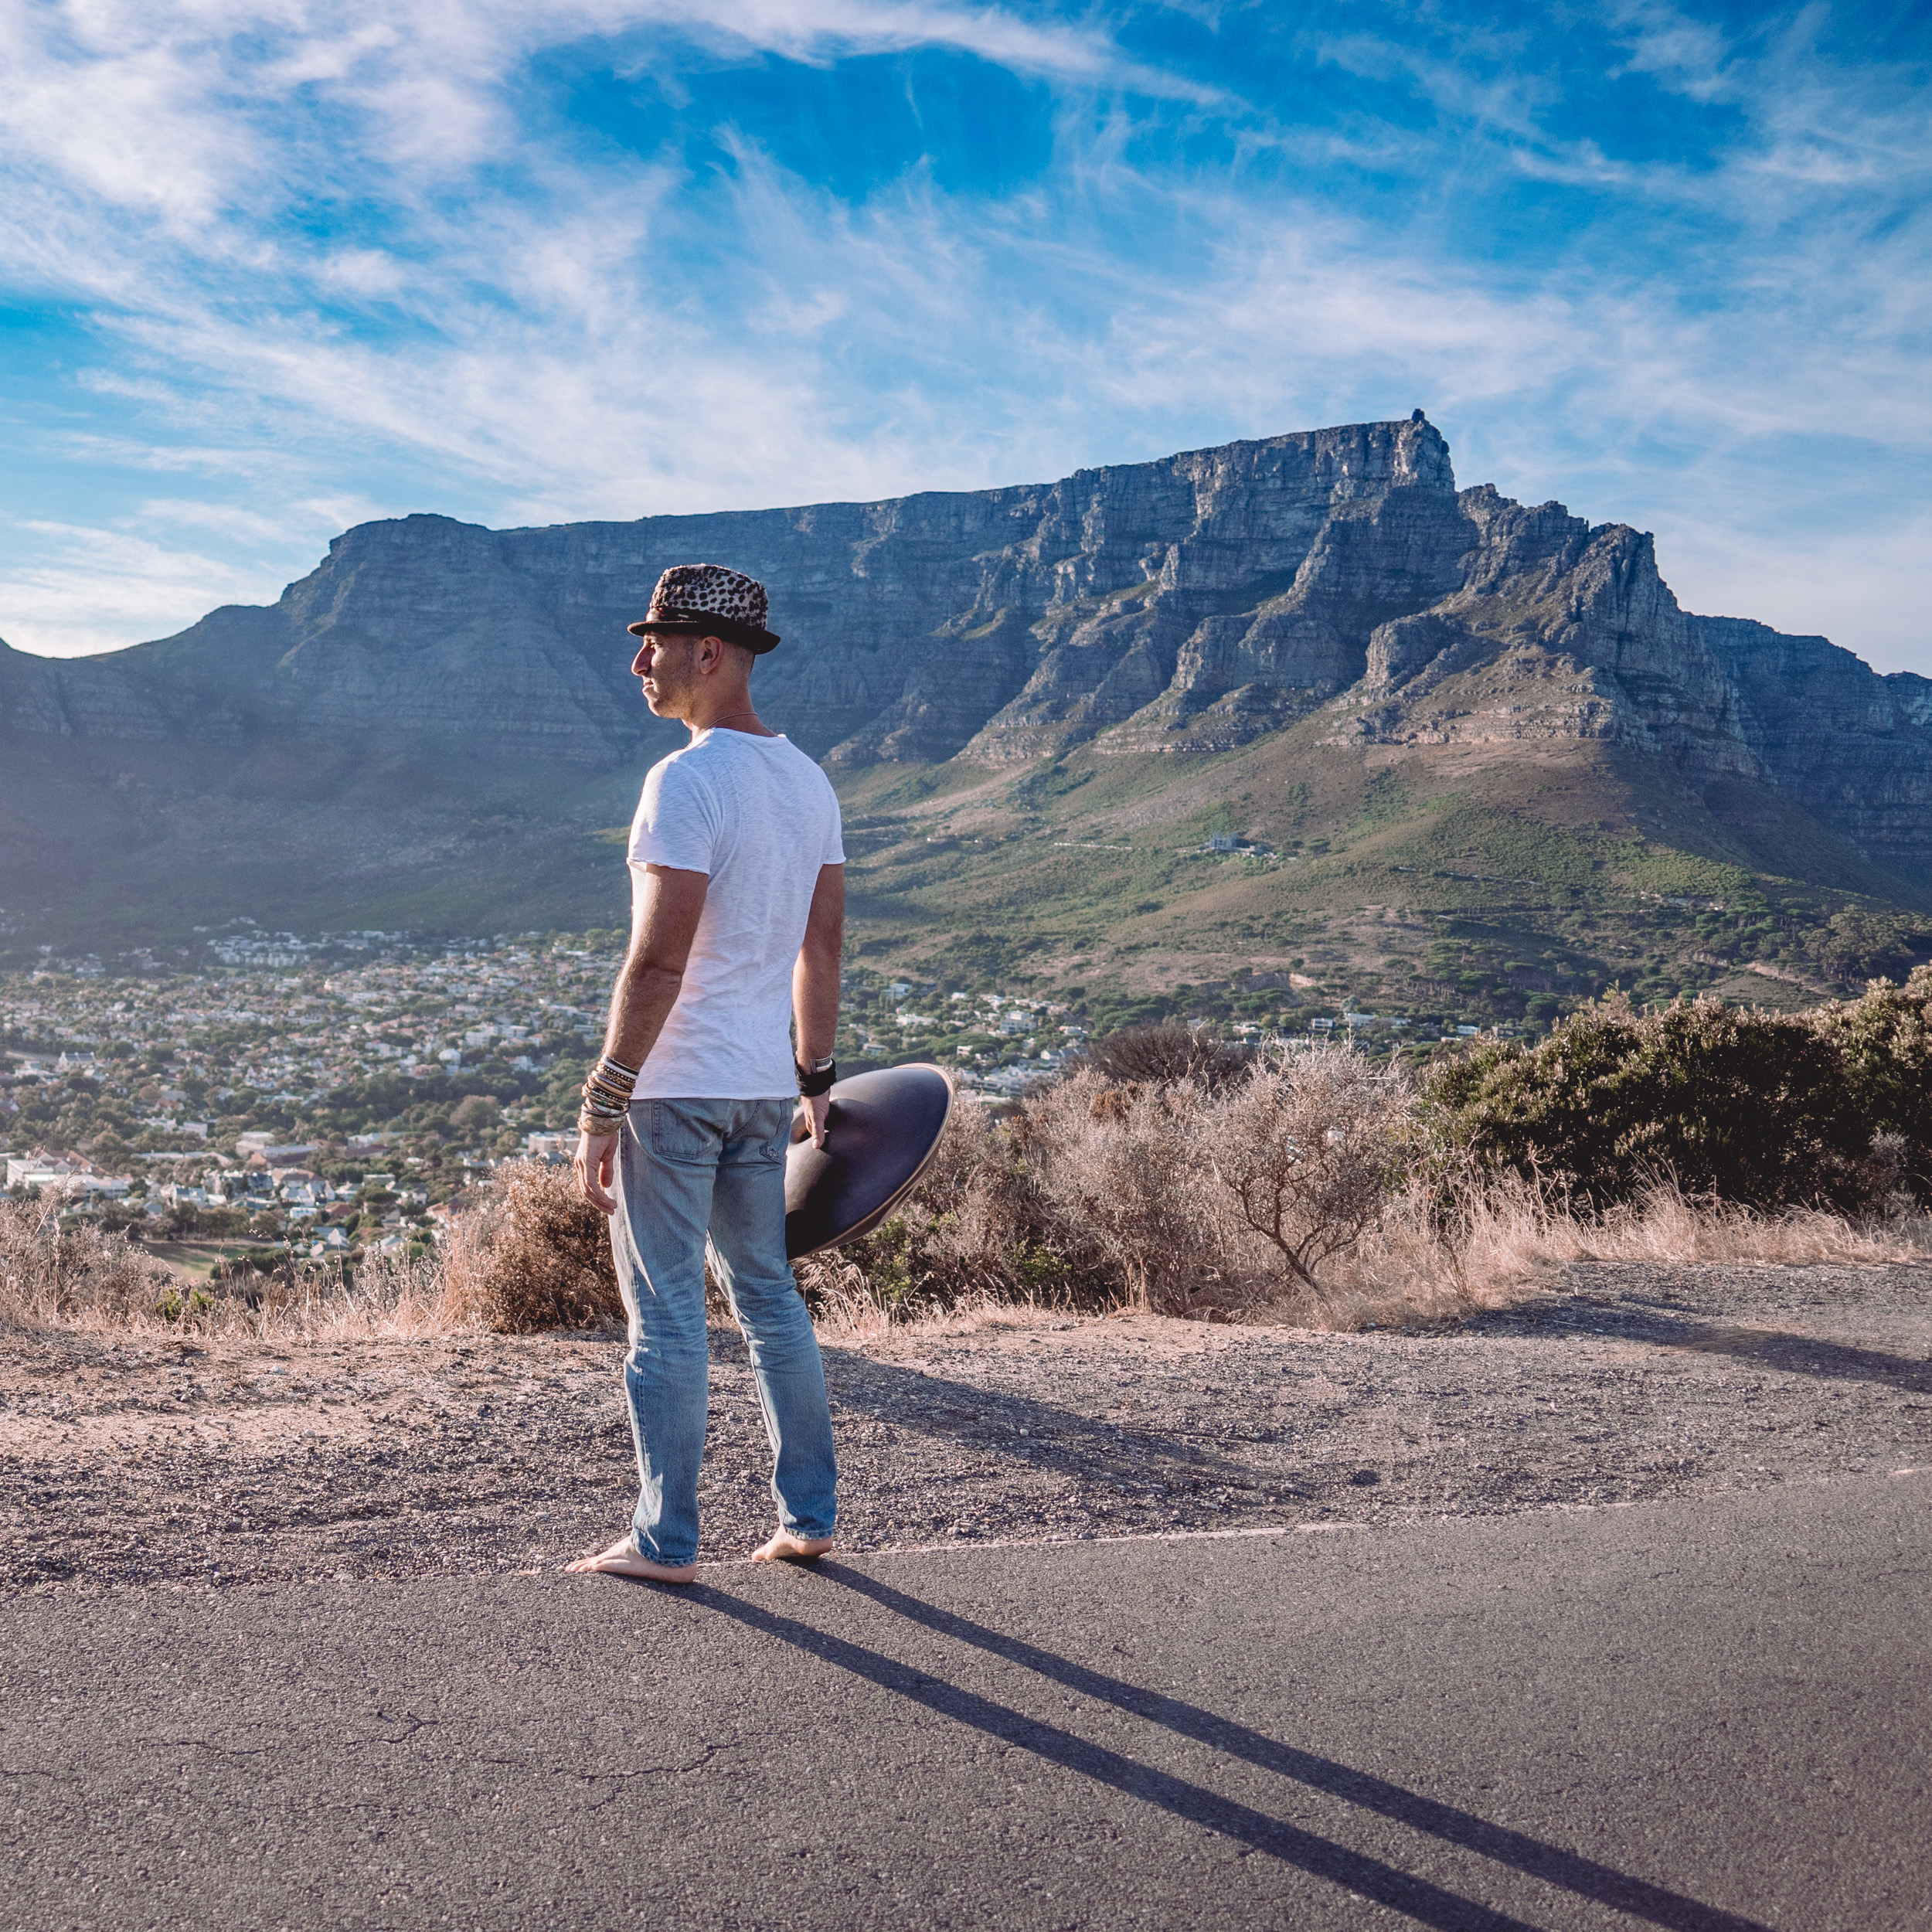 Marco Selvaggio - Signal Hill, Lions head, Table Mountain, Cape Town South Africa - Image by Ken Treloar Photography 2019-7.jpg